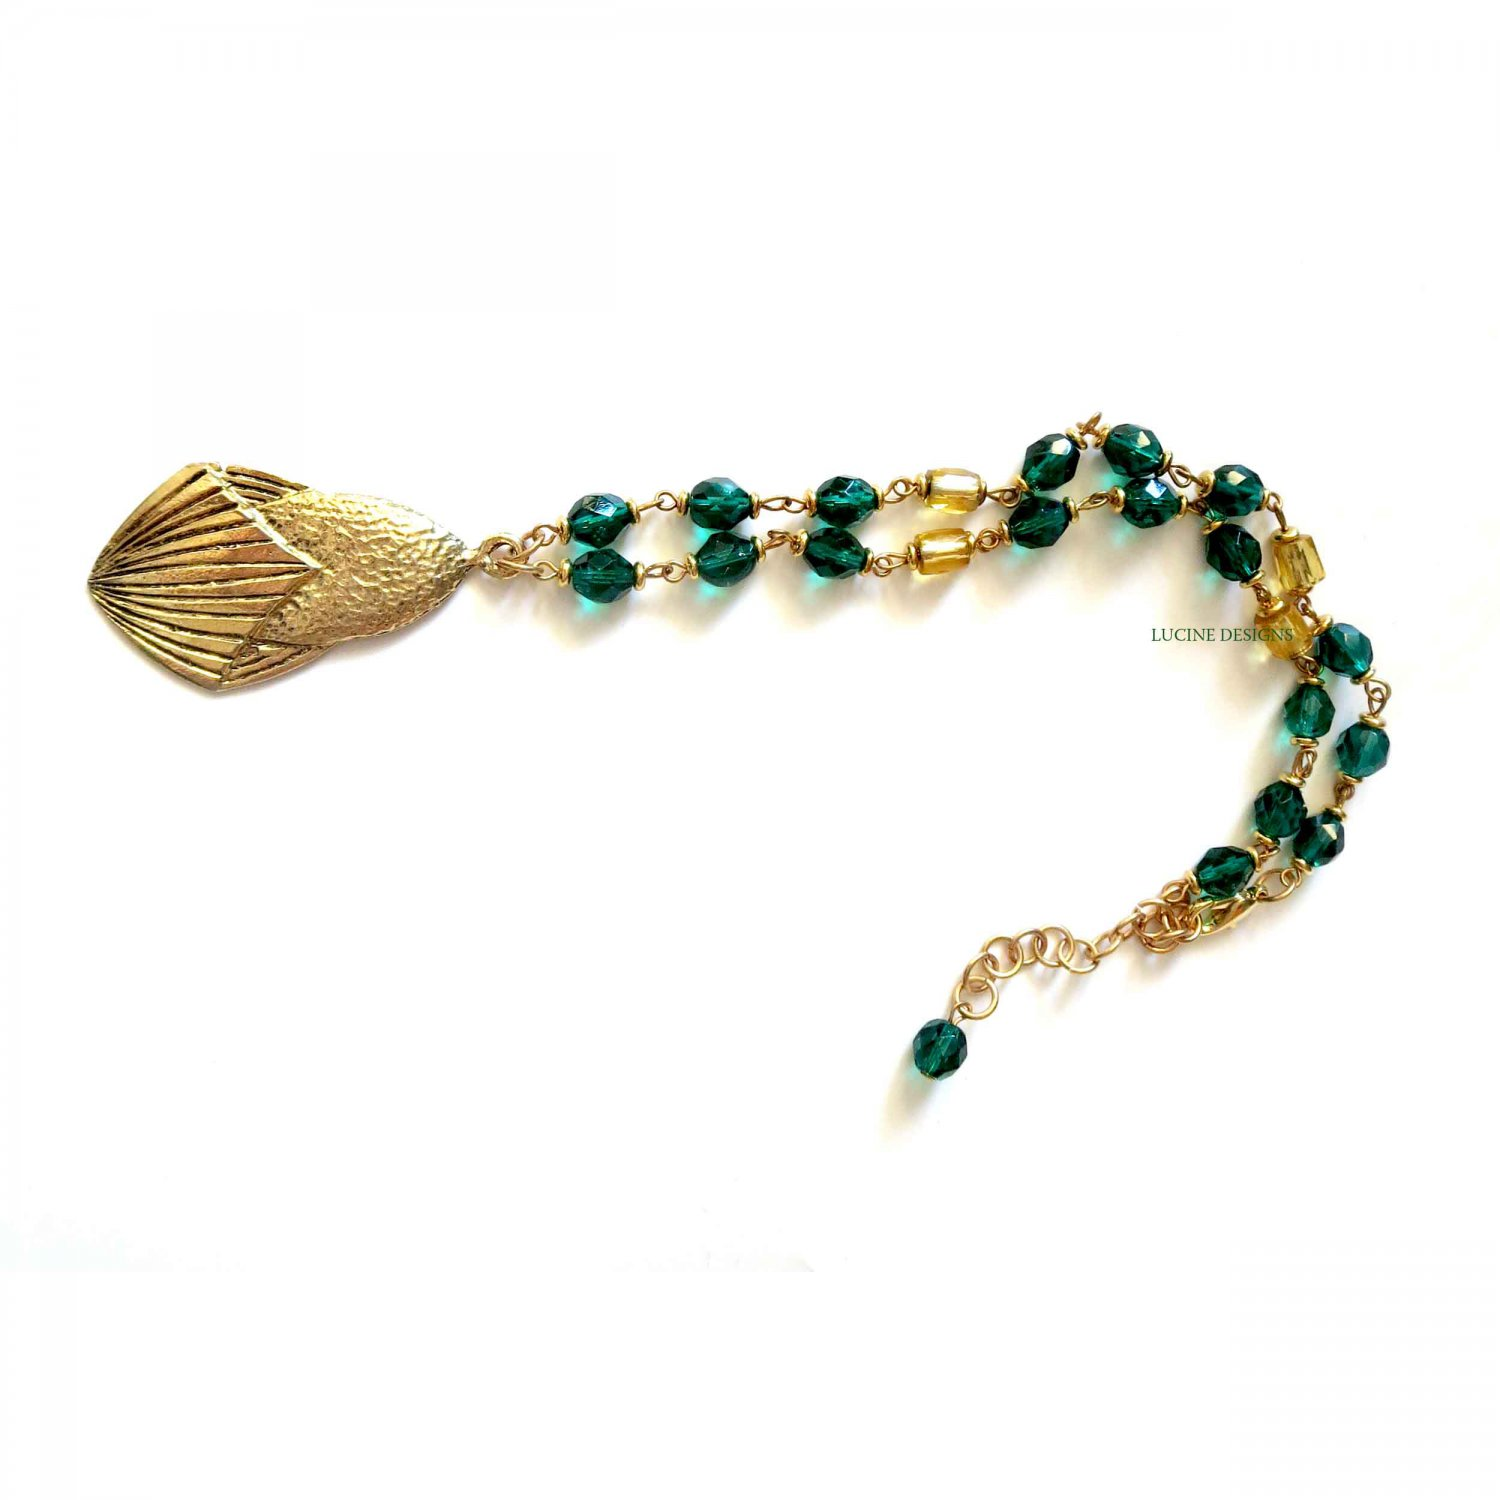 Green and gold ooak fashion necklace by Lucine